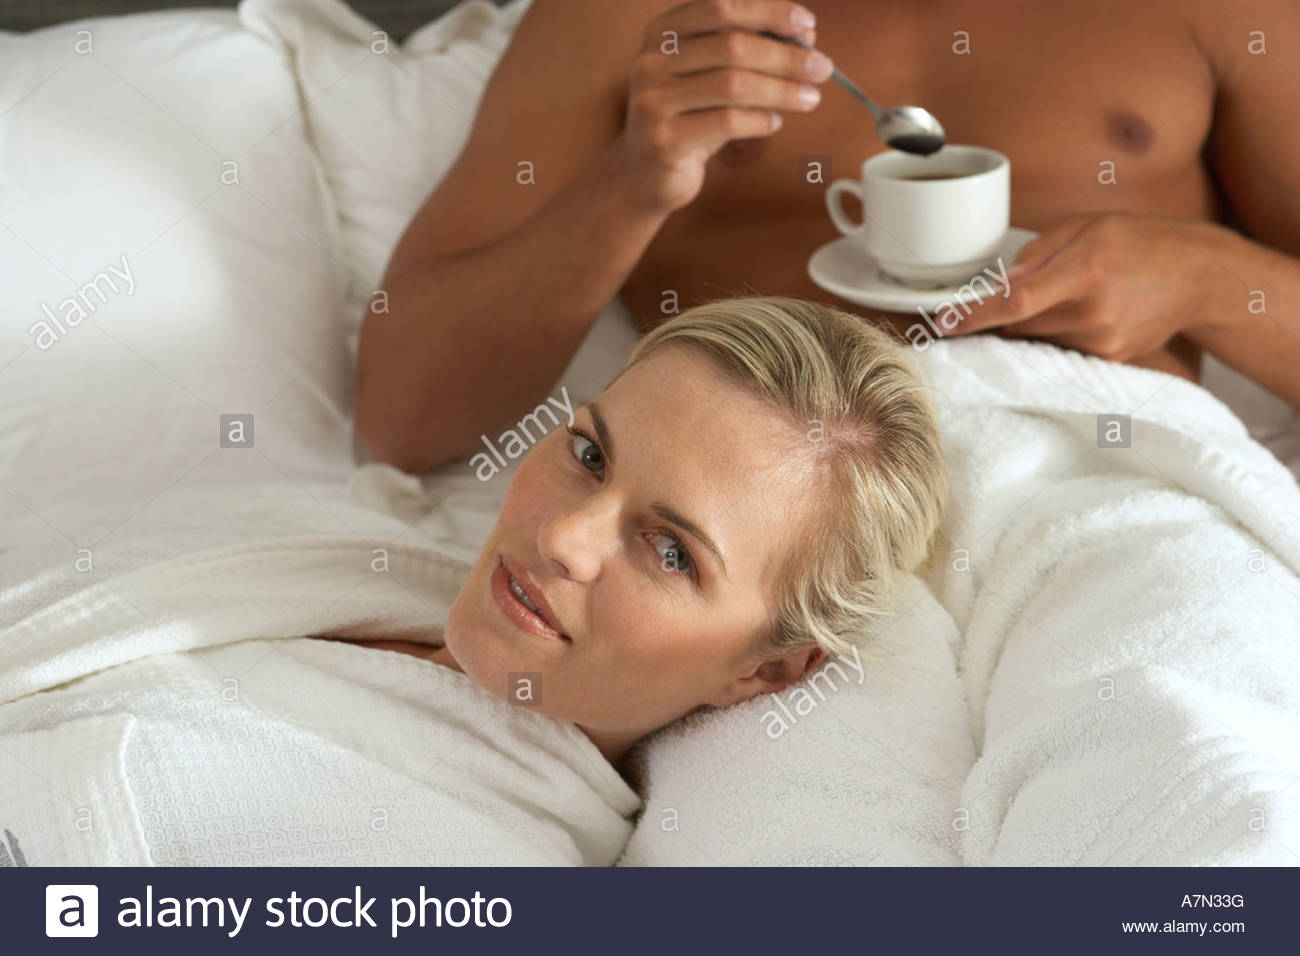 Couple in bathrobes relaxing on hotel bed woman with head on man s lap man drinking coffee - Stock Image